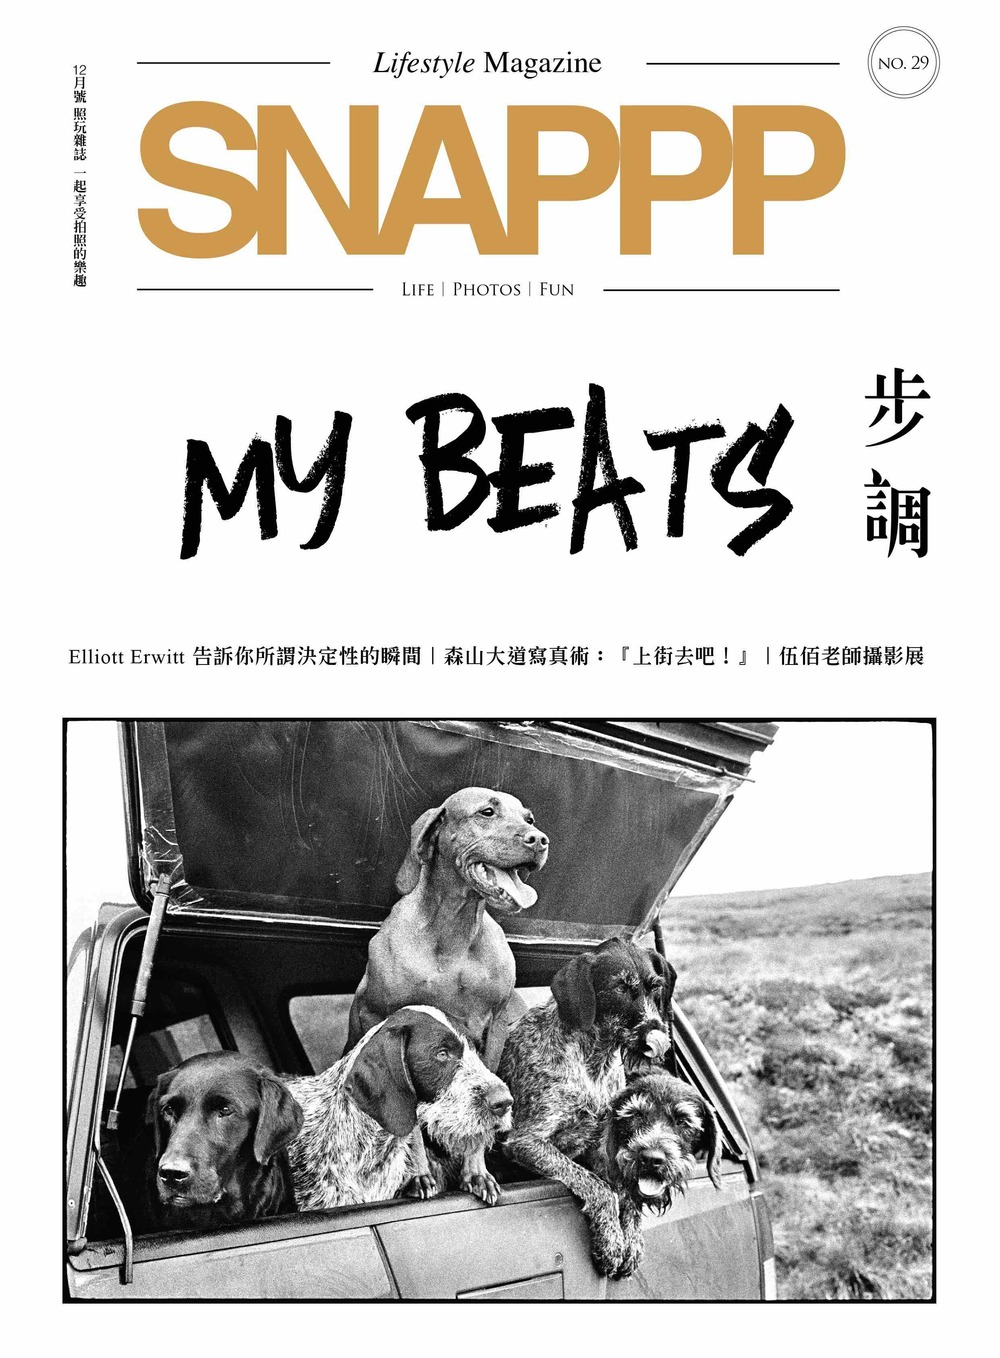 SNAPPP-NO29 COVER-ver1.jpg